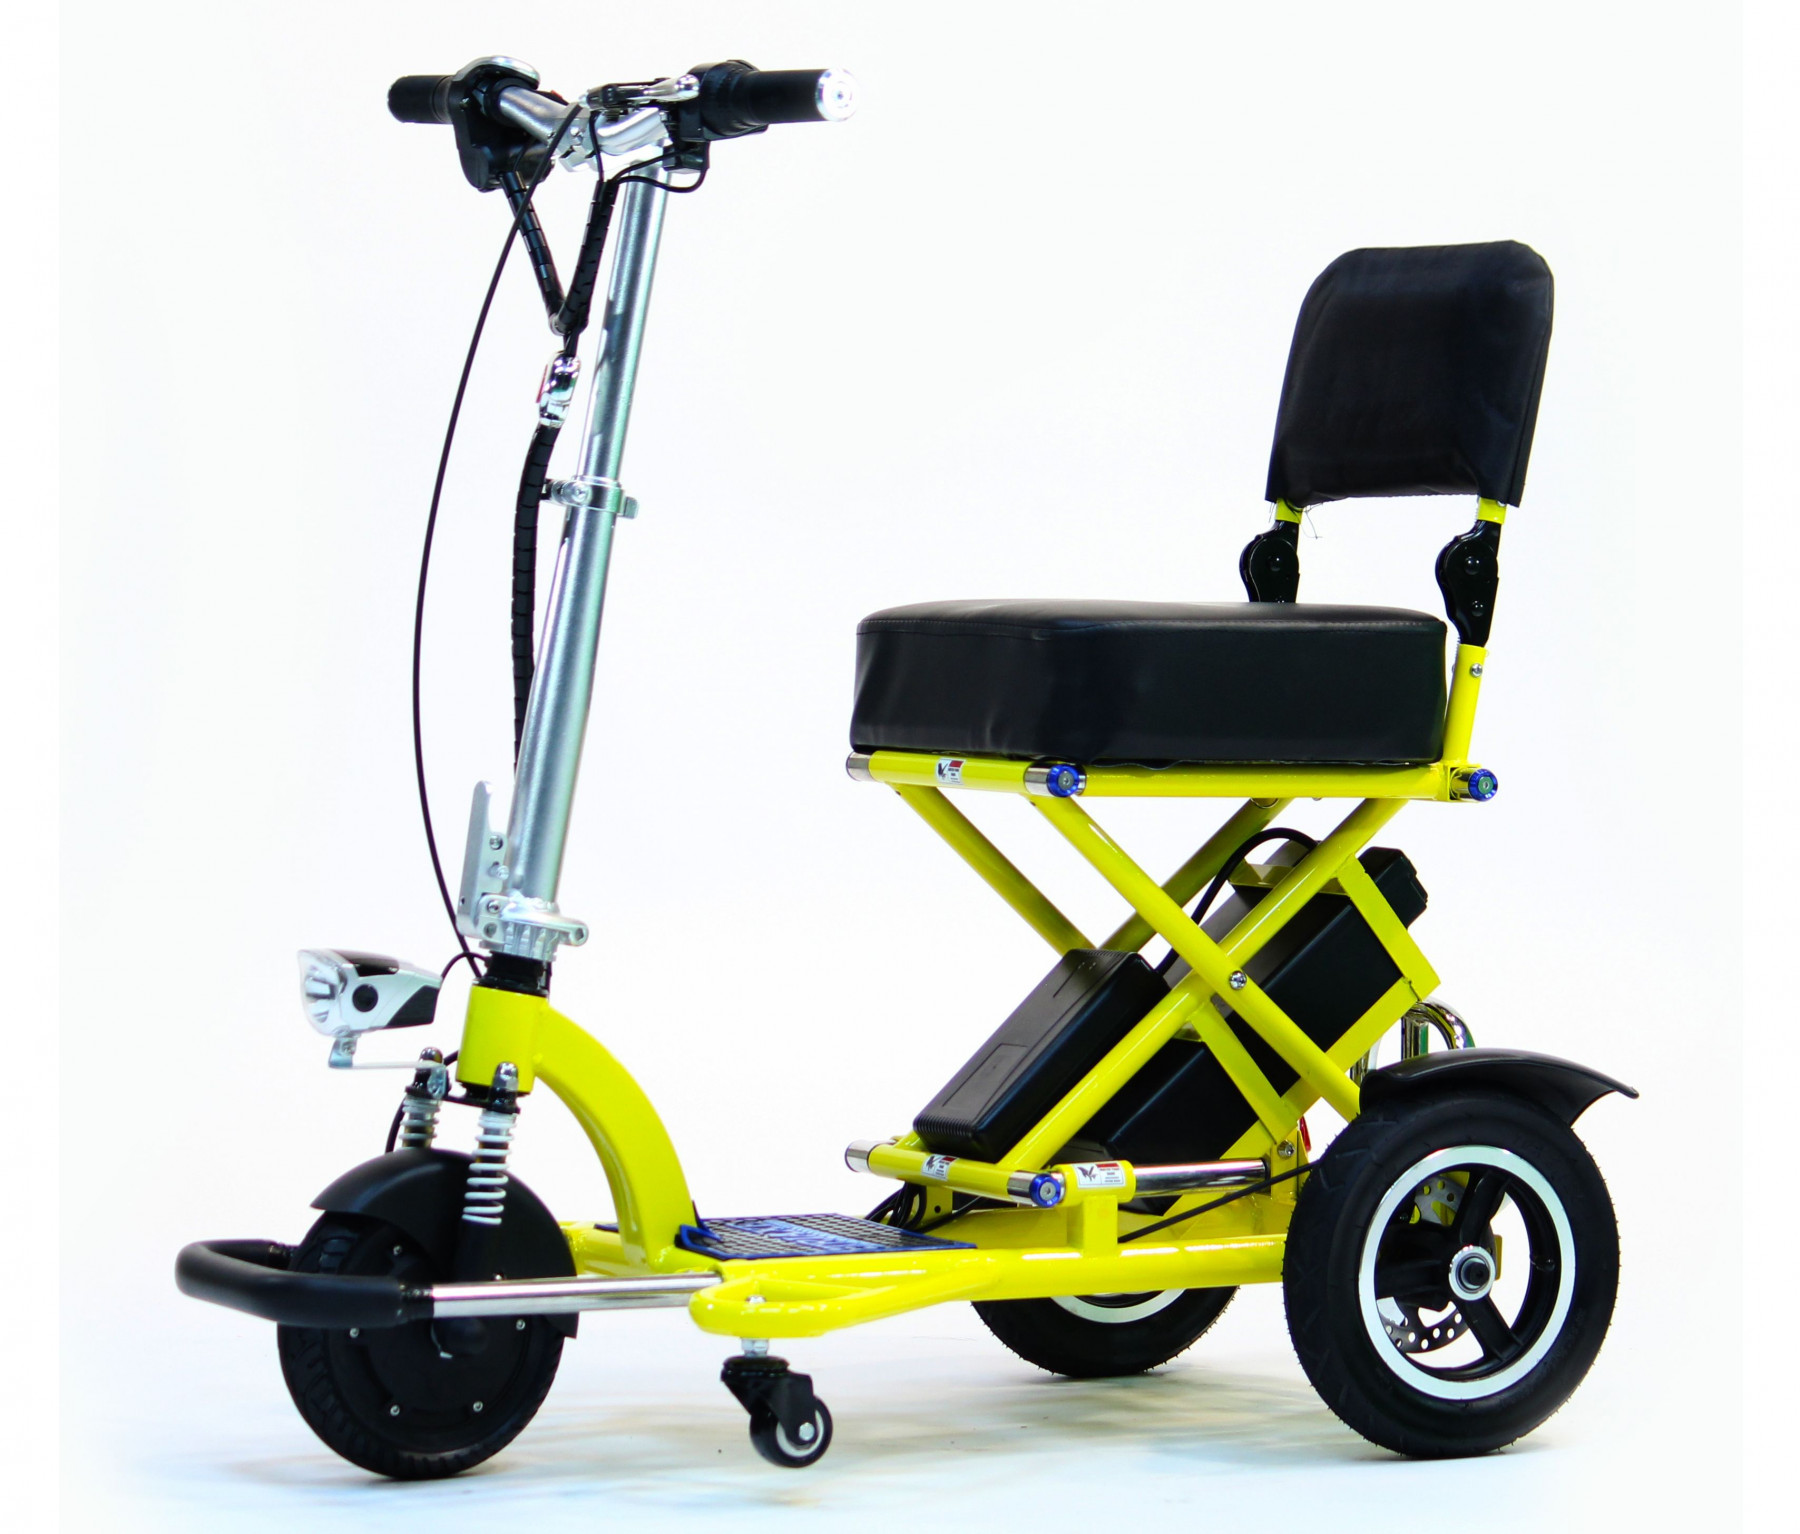 Triaxe Sport Scooter Folding Travel Mobility Scooters